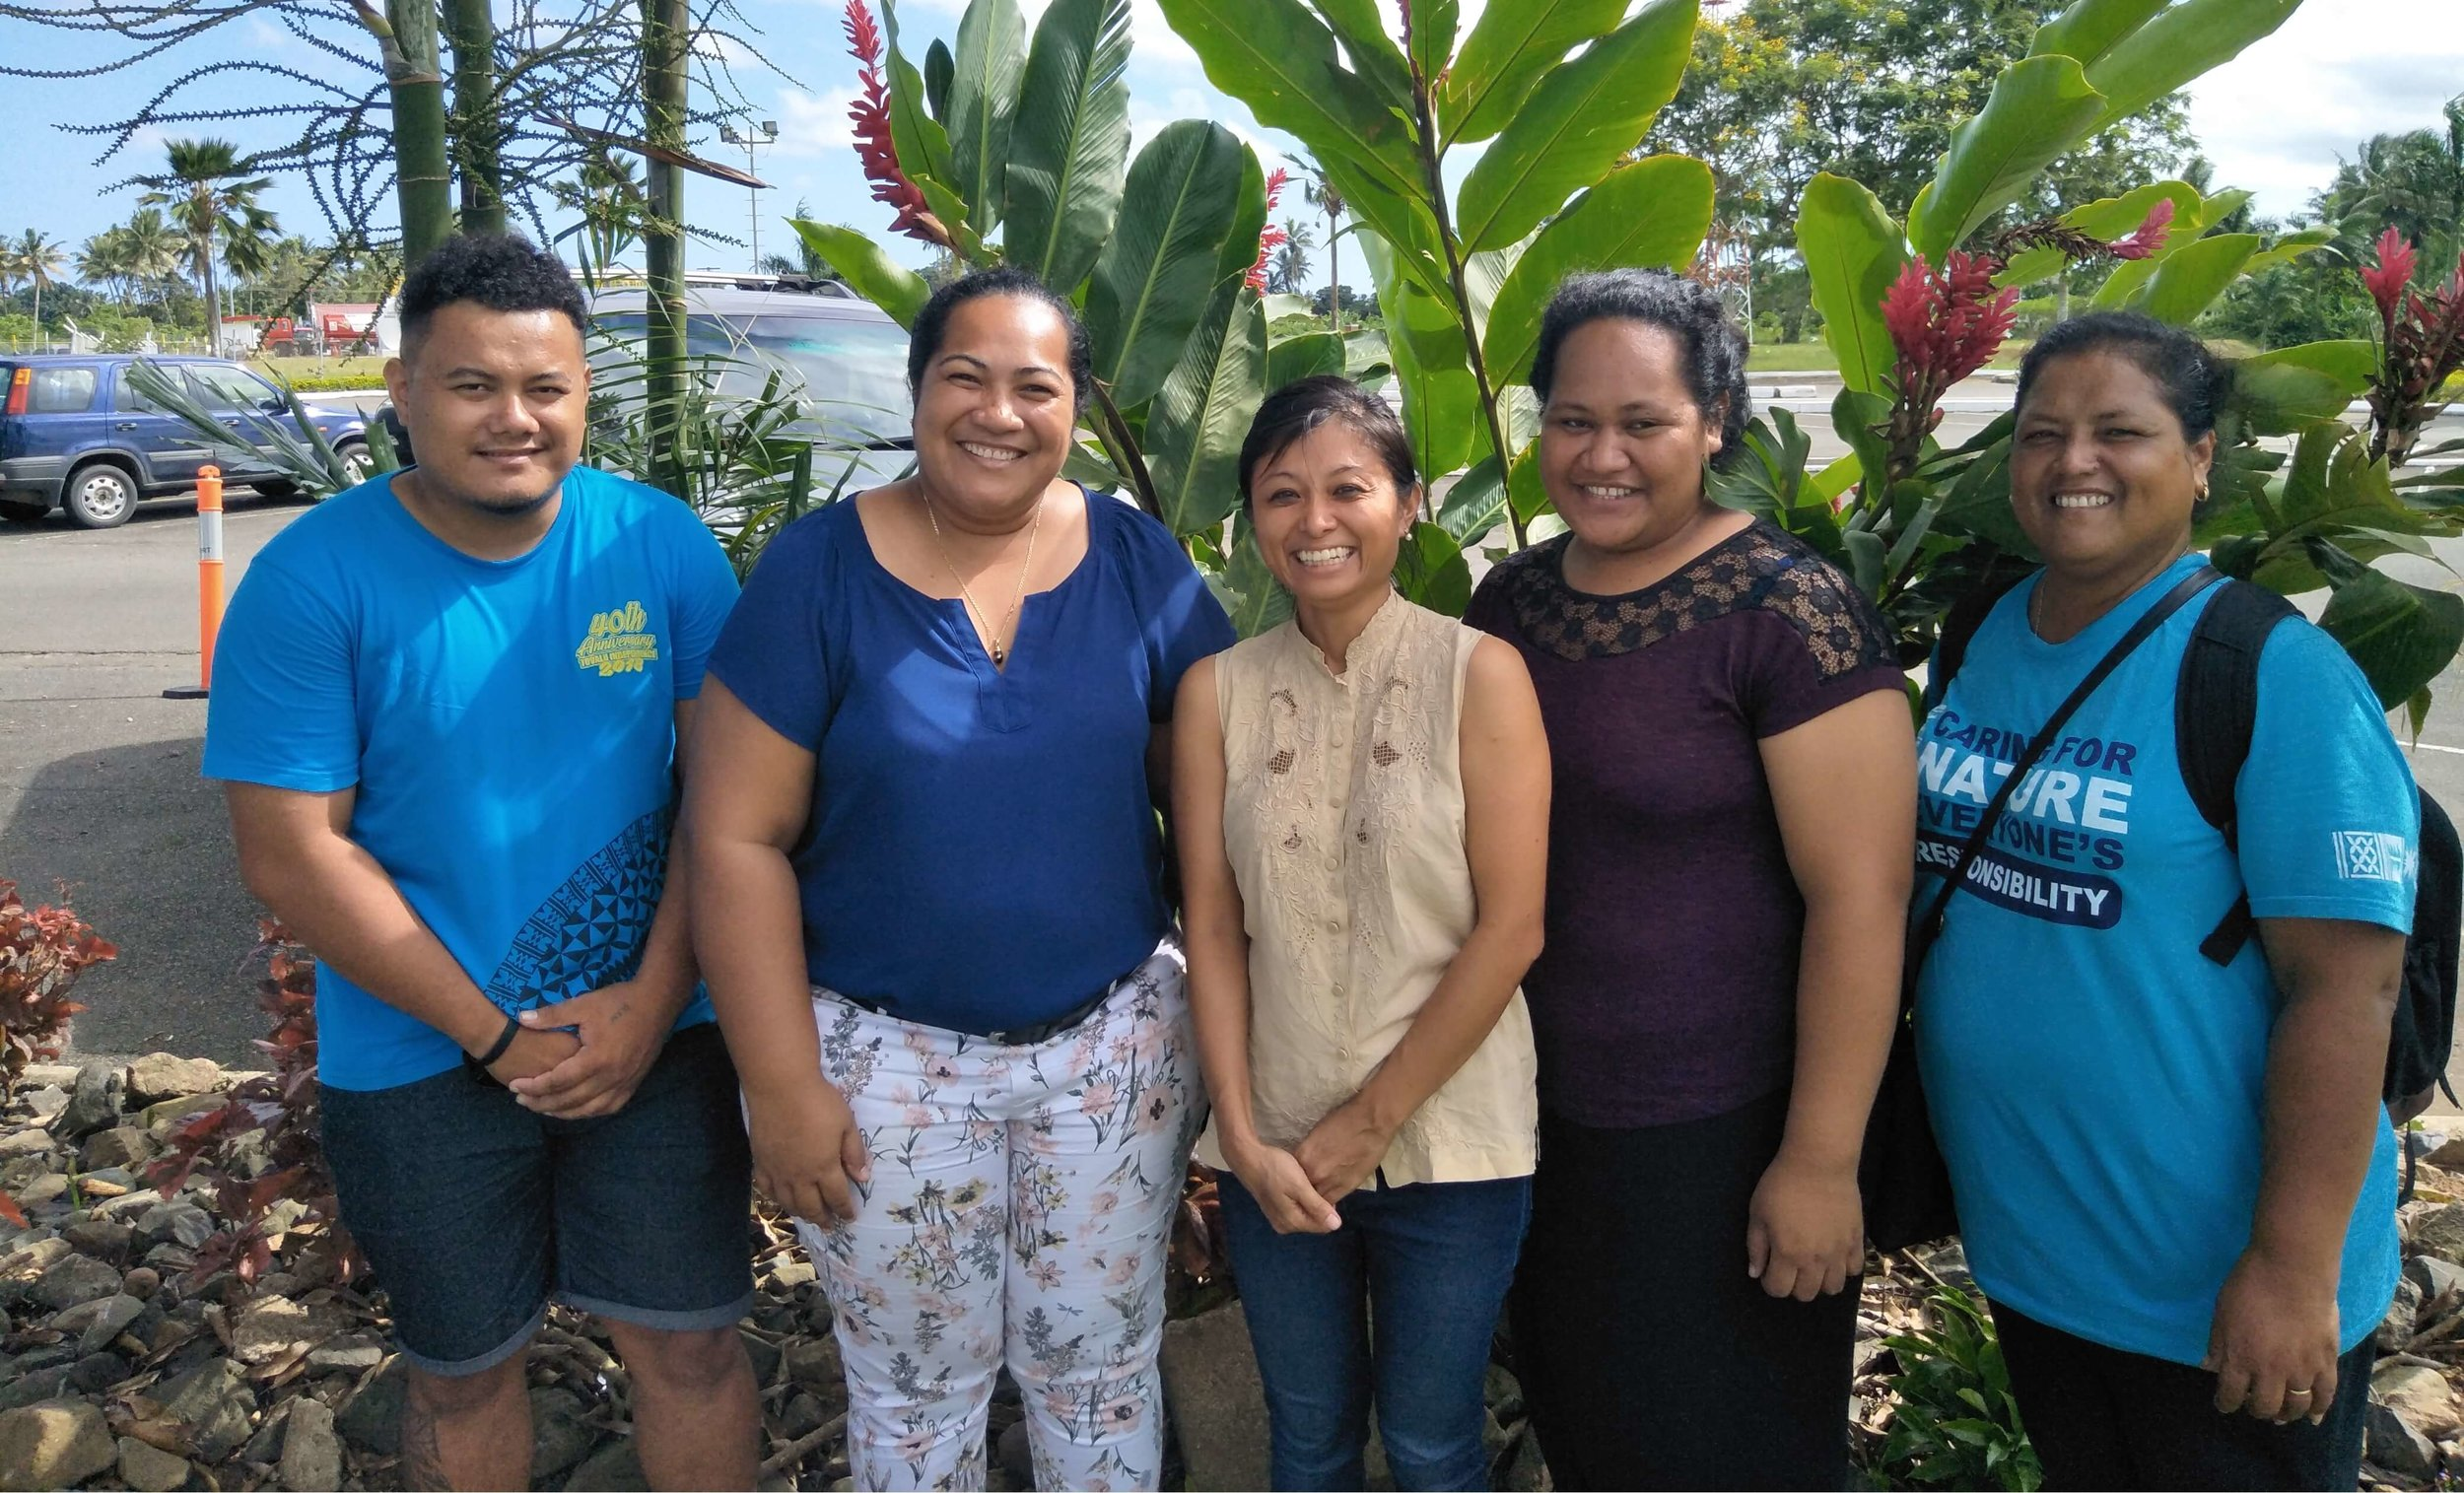 Kate Morioka - Reducing the effects of climate change and natural disasters in Tuvalu